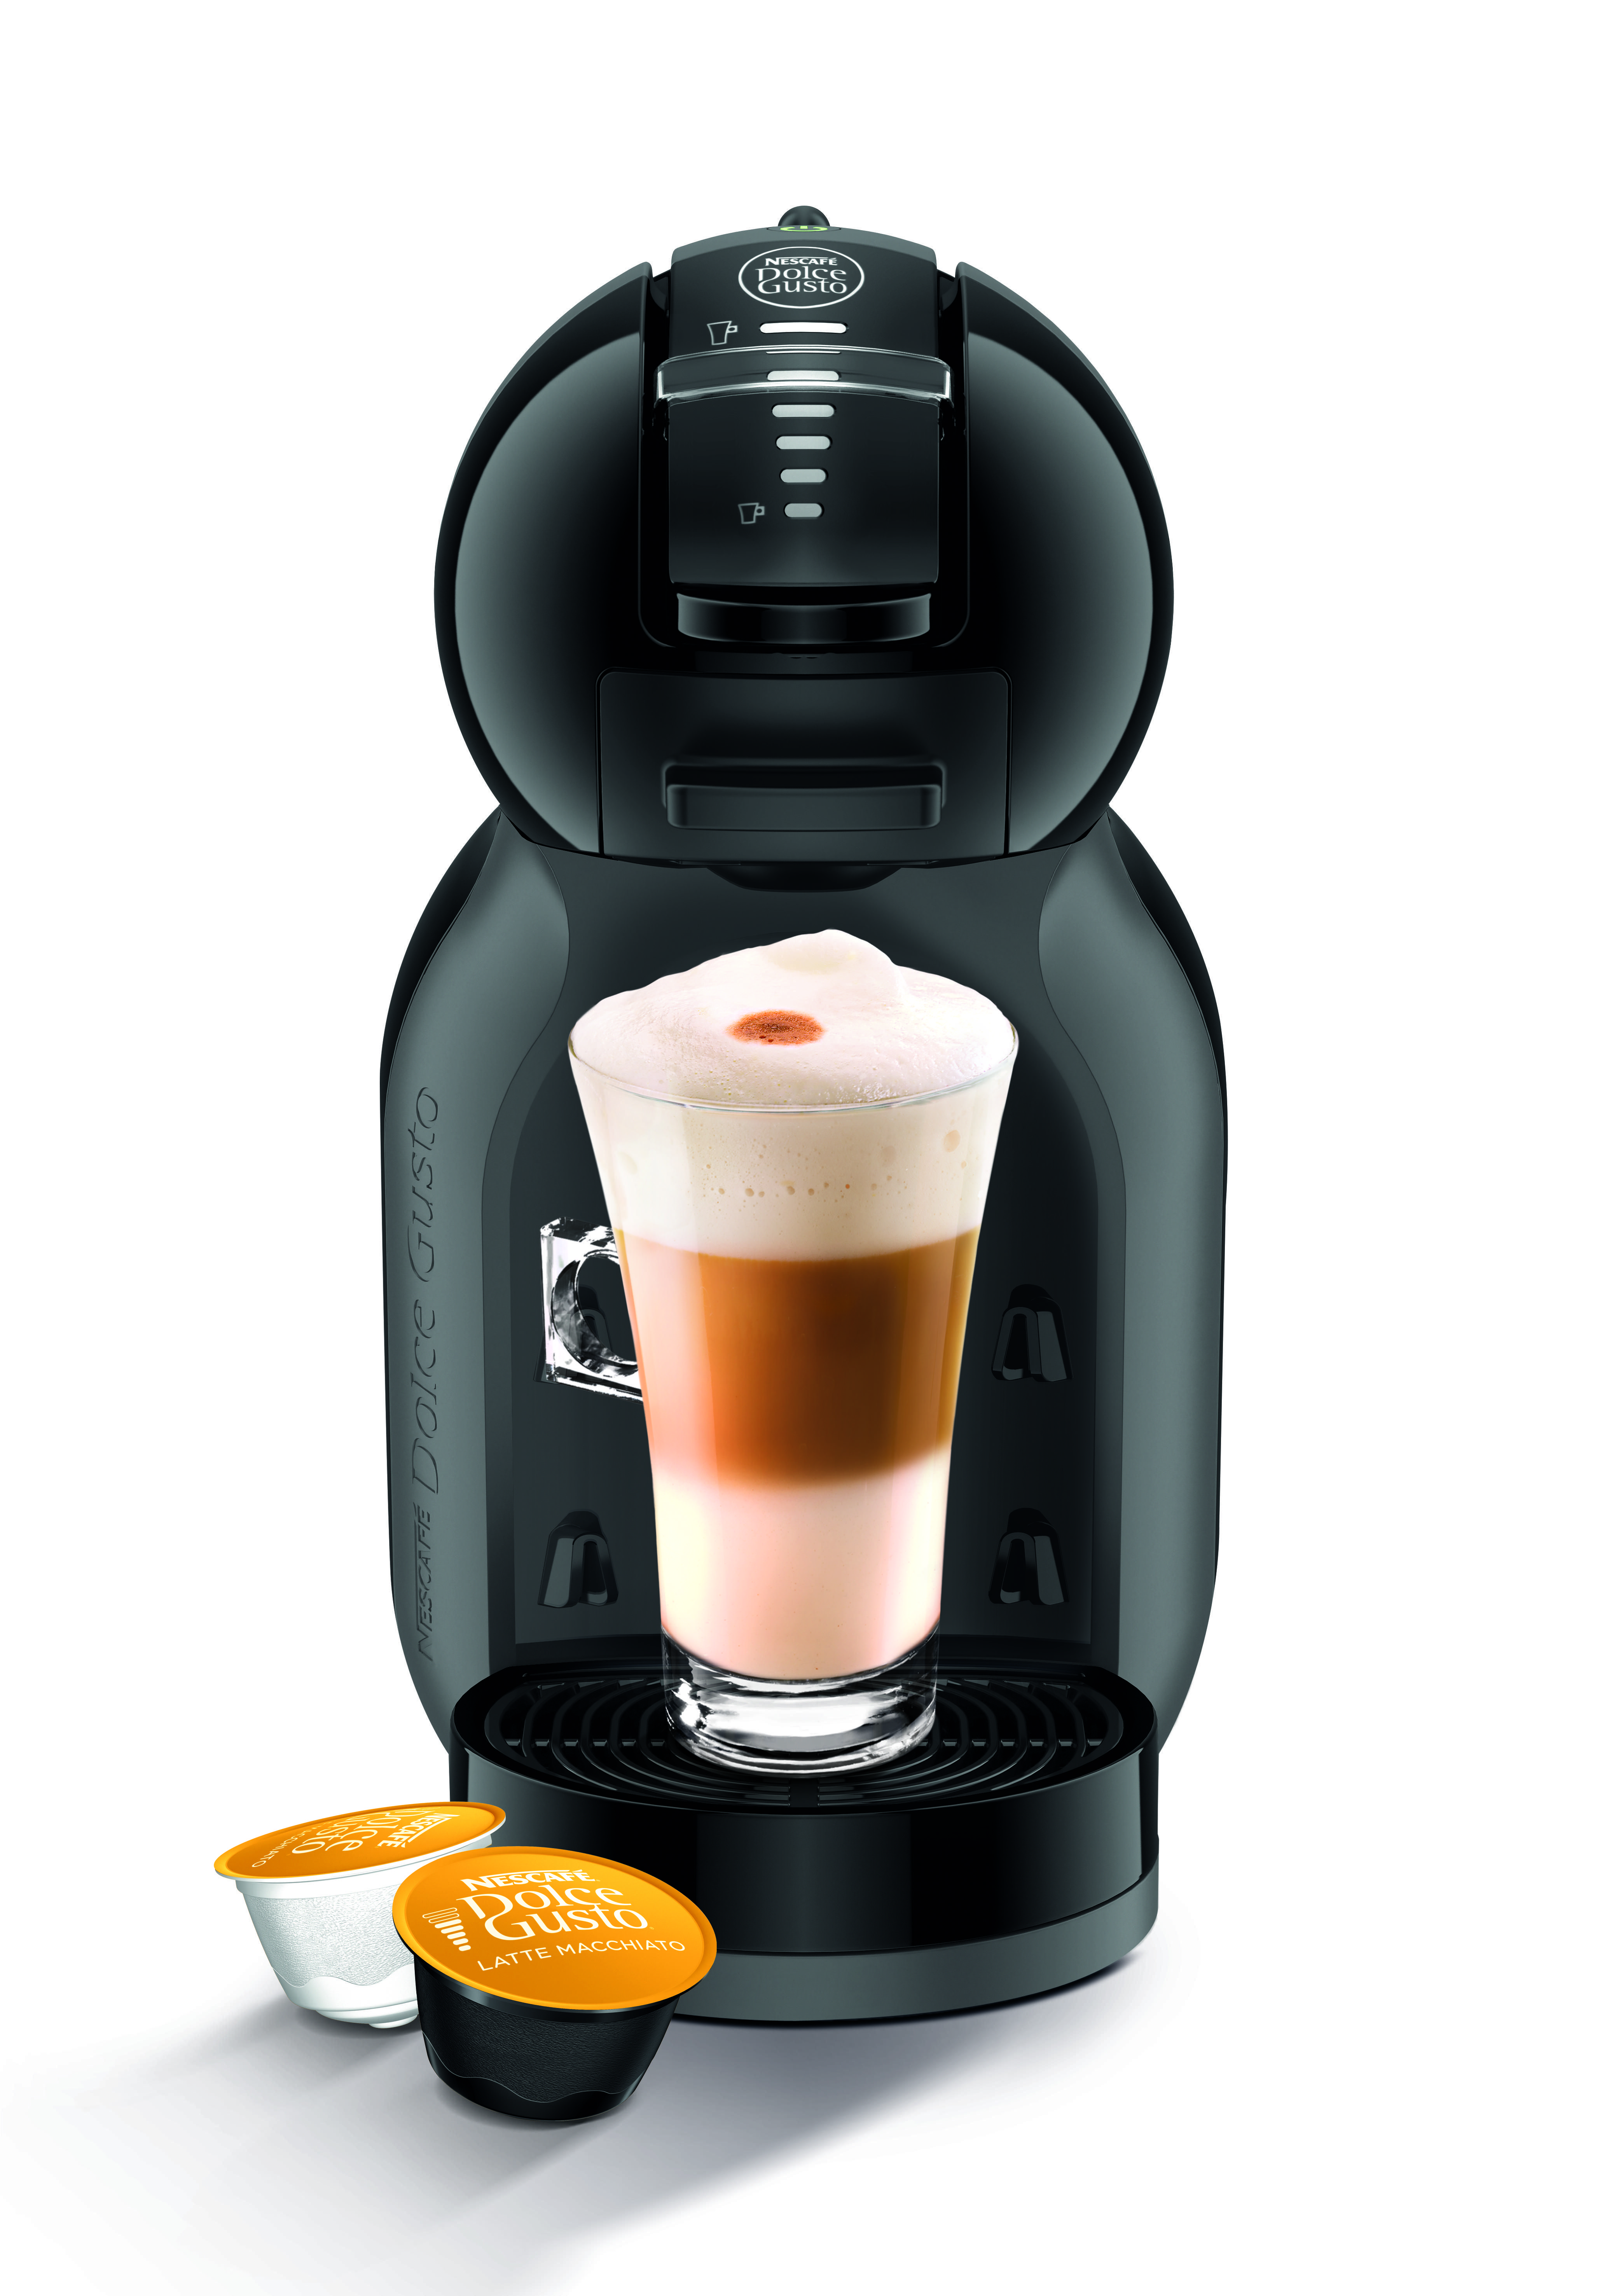 28 Days Of Kitchen Giveaways Day 6 Capsule Coffee Machine